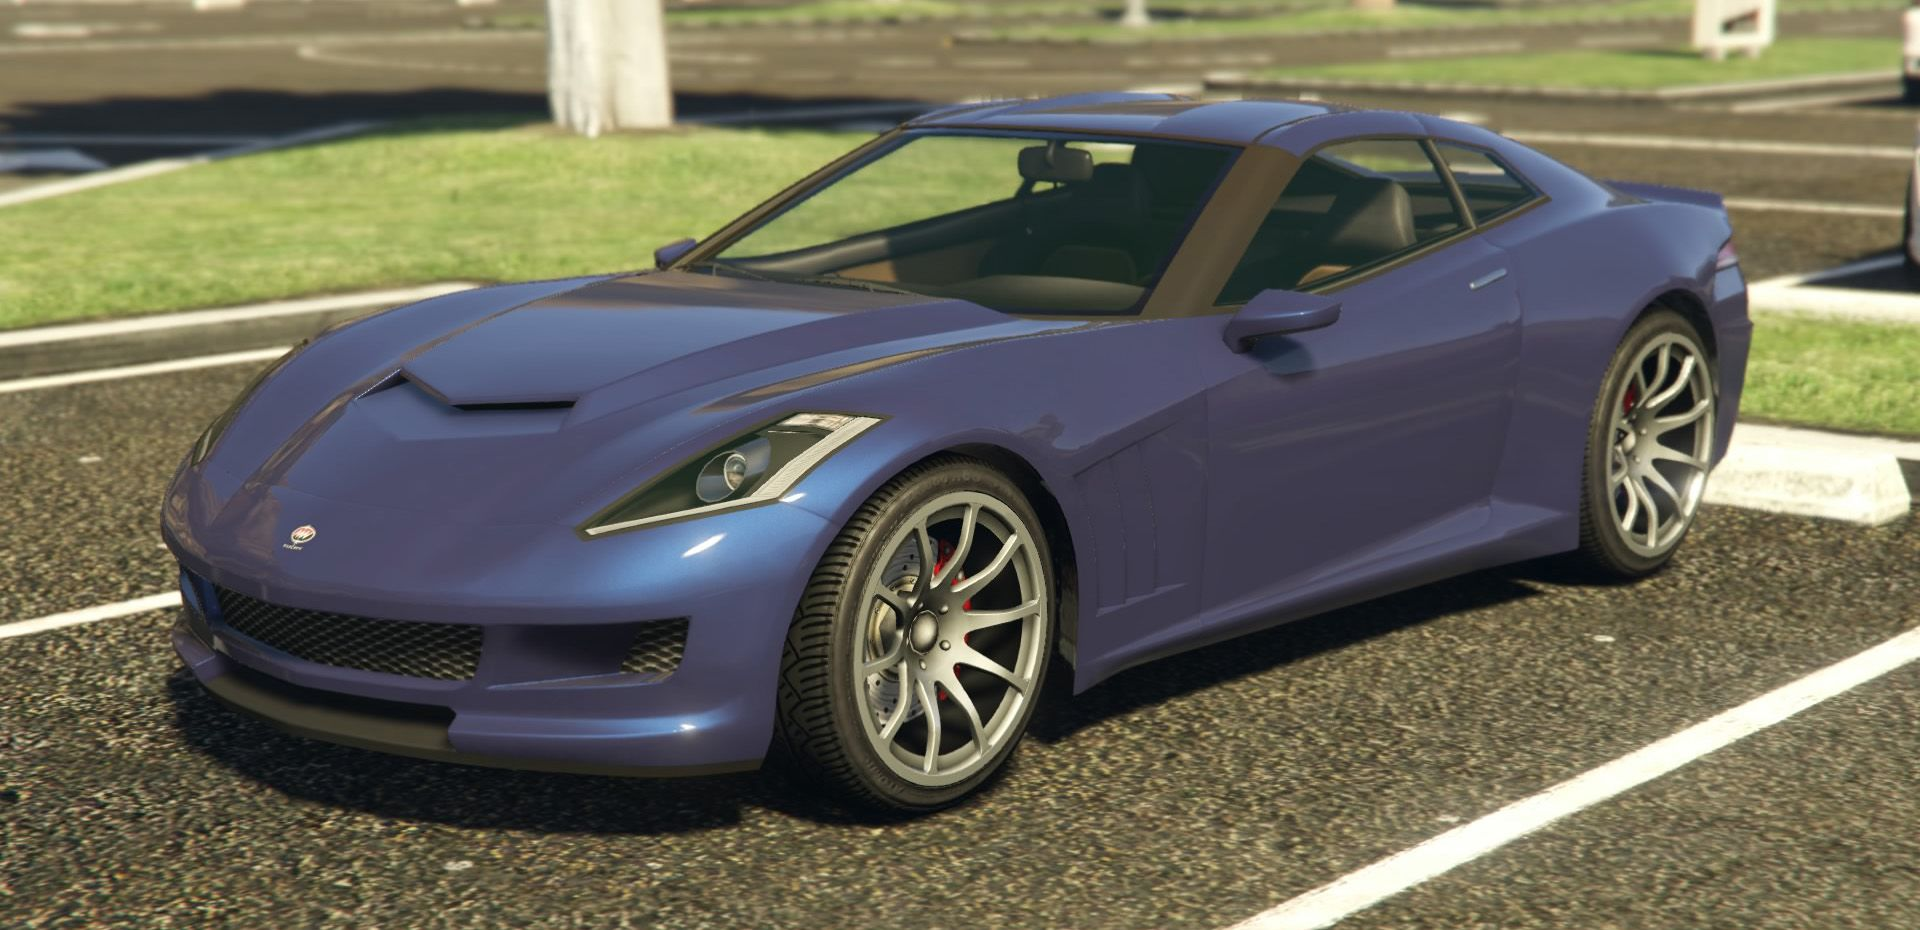 13 Cool GTA V Cars And What They Are In Real Life